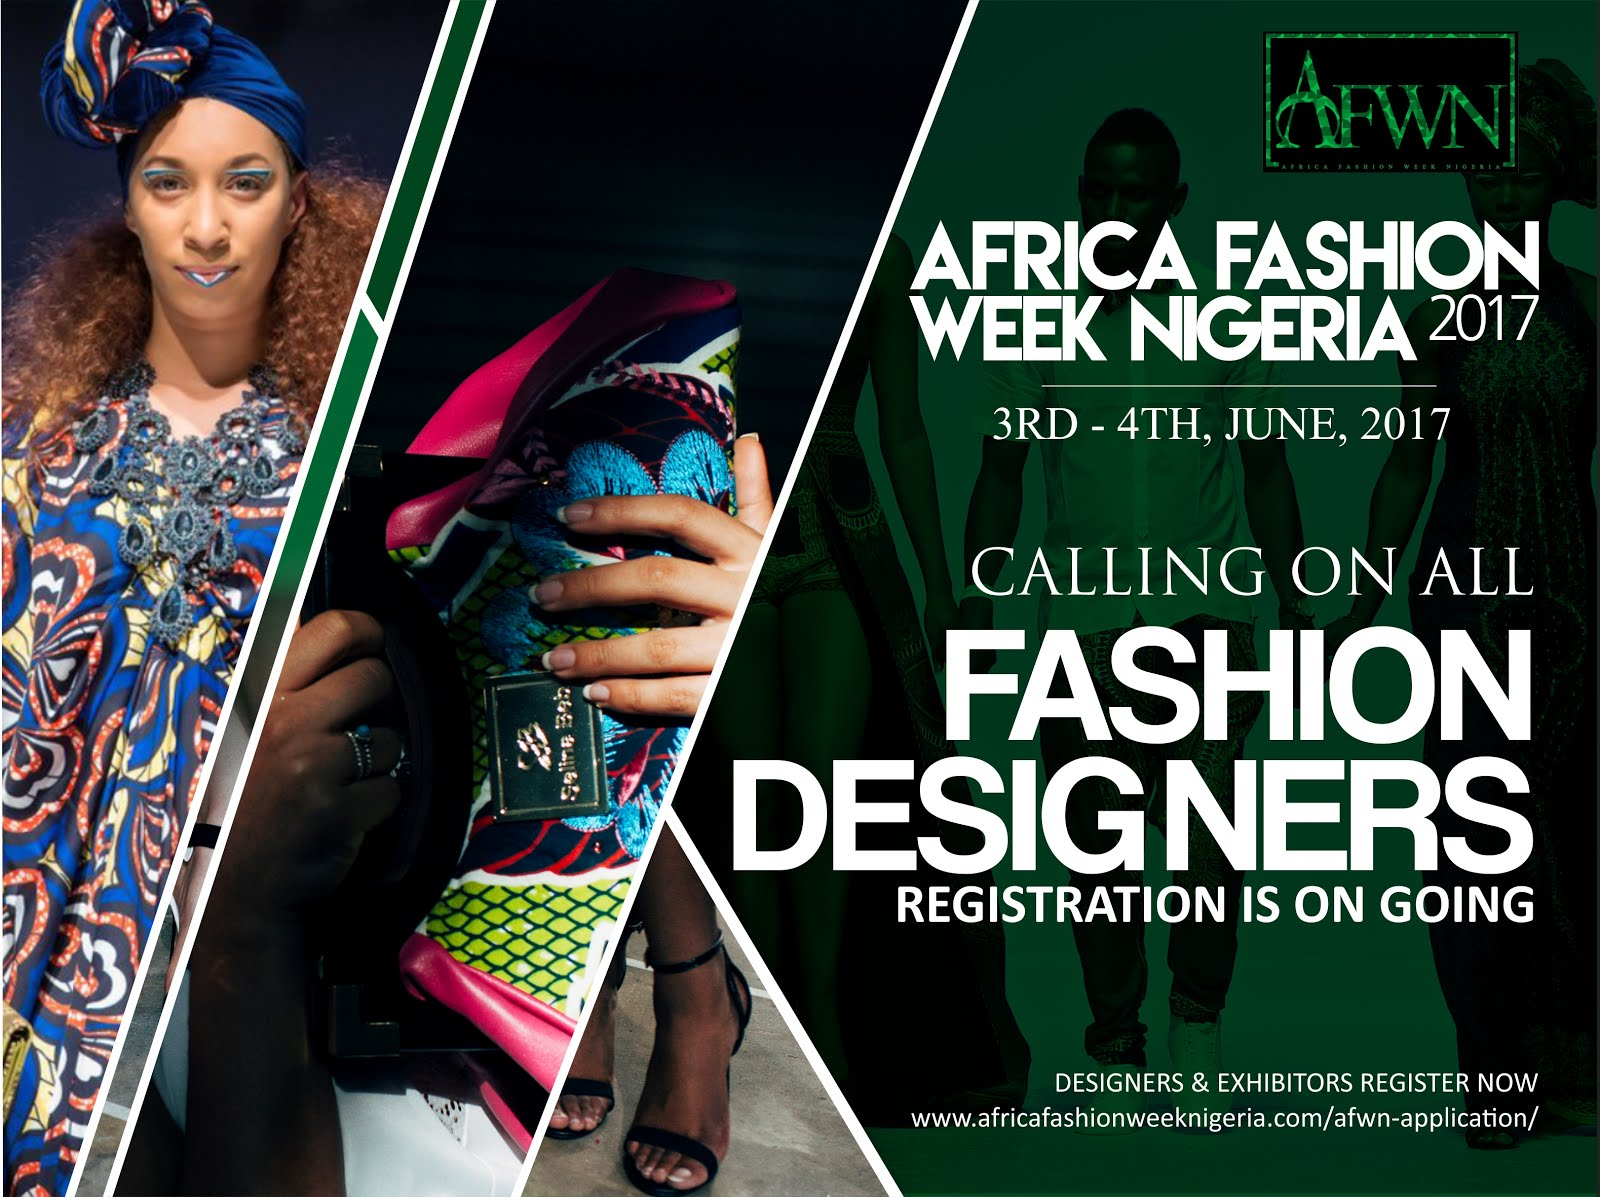 AFRICAN FASHION WEEK LONDON